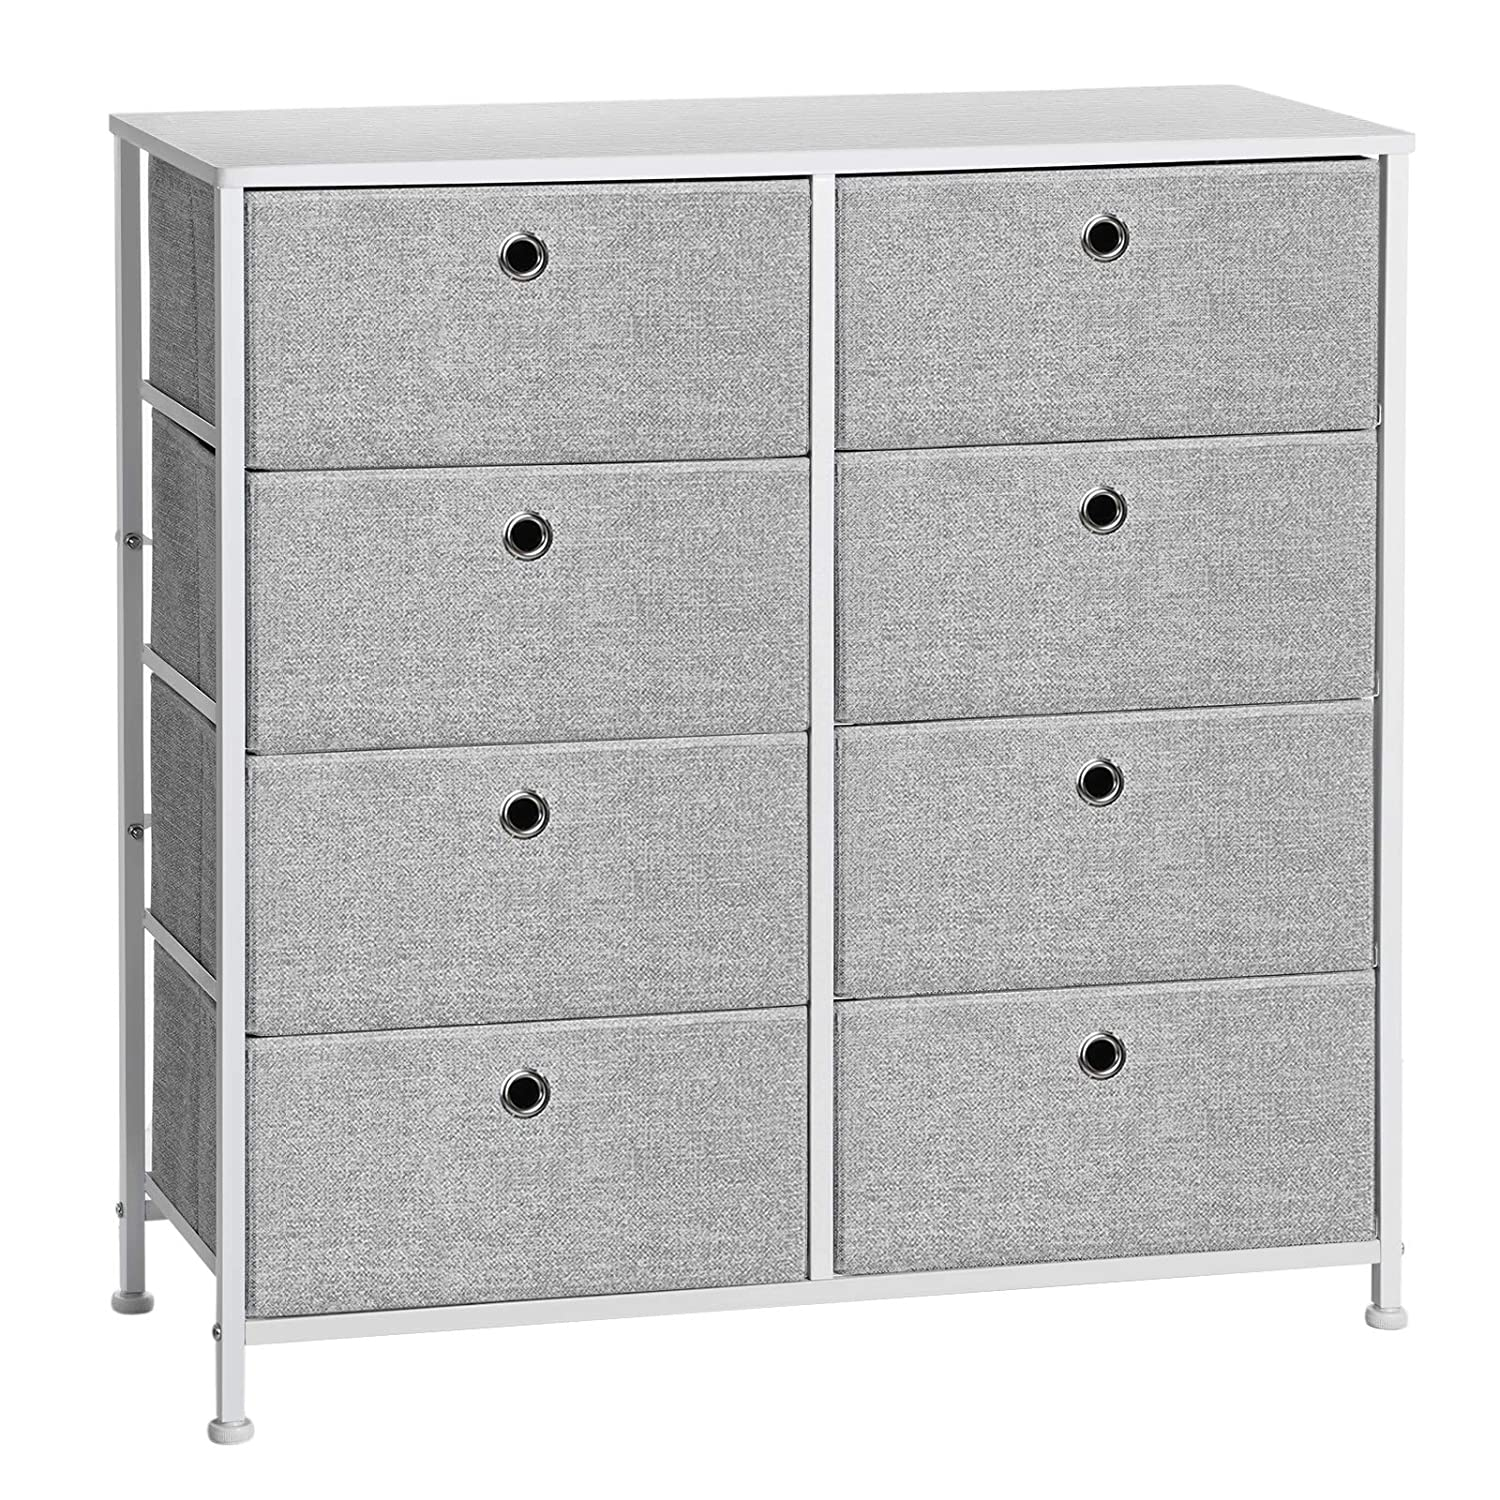 SONGMICS 4-Tier Storage Dresser with 8 Easy Pull Fabric Drawers and Wooden Tabletop for Closets, Nursery, Dorm Room, Light Gray and White ULTS24W -